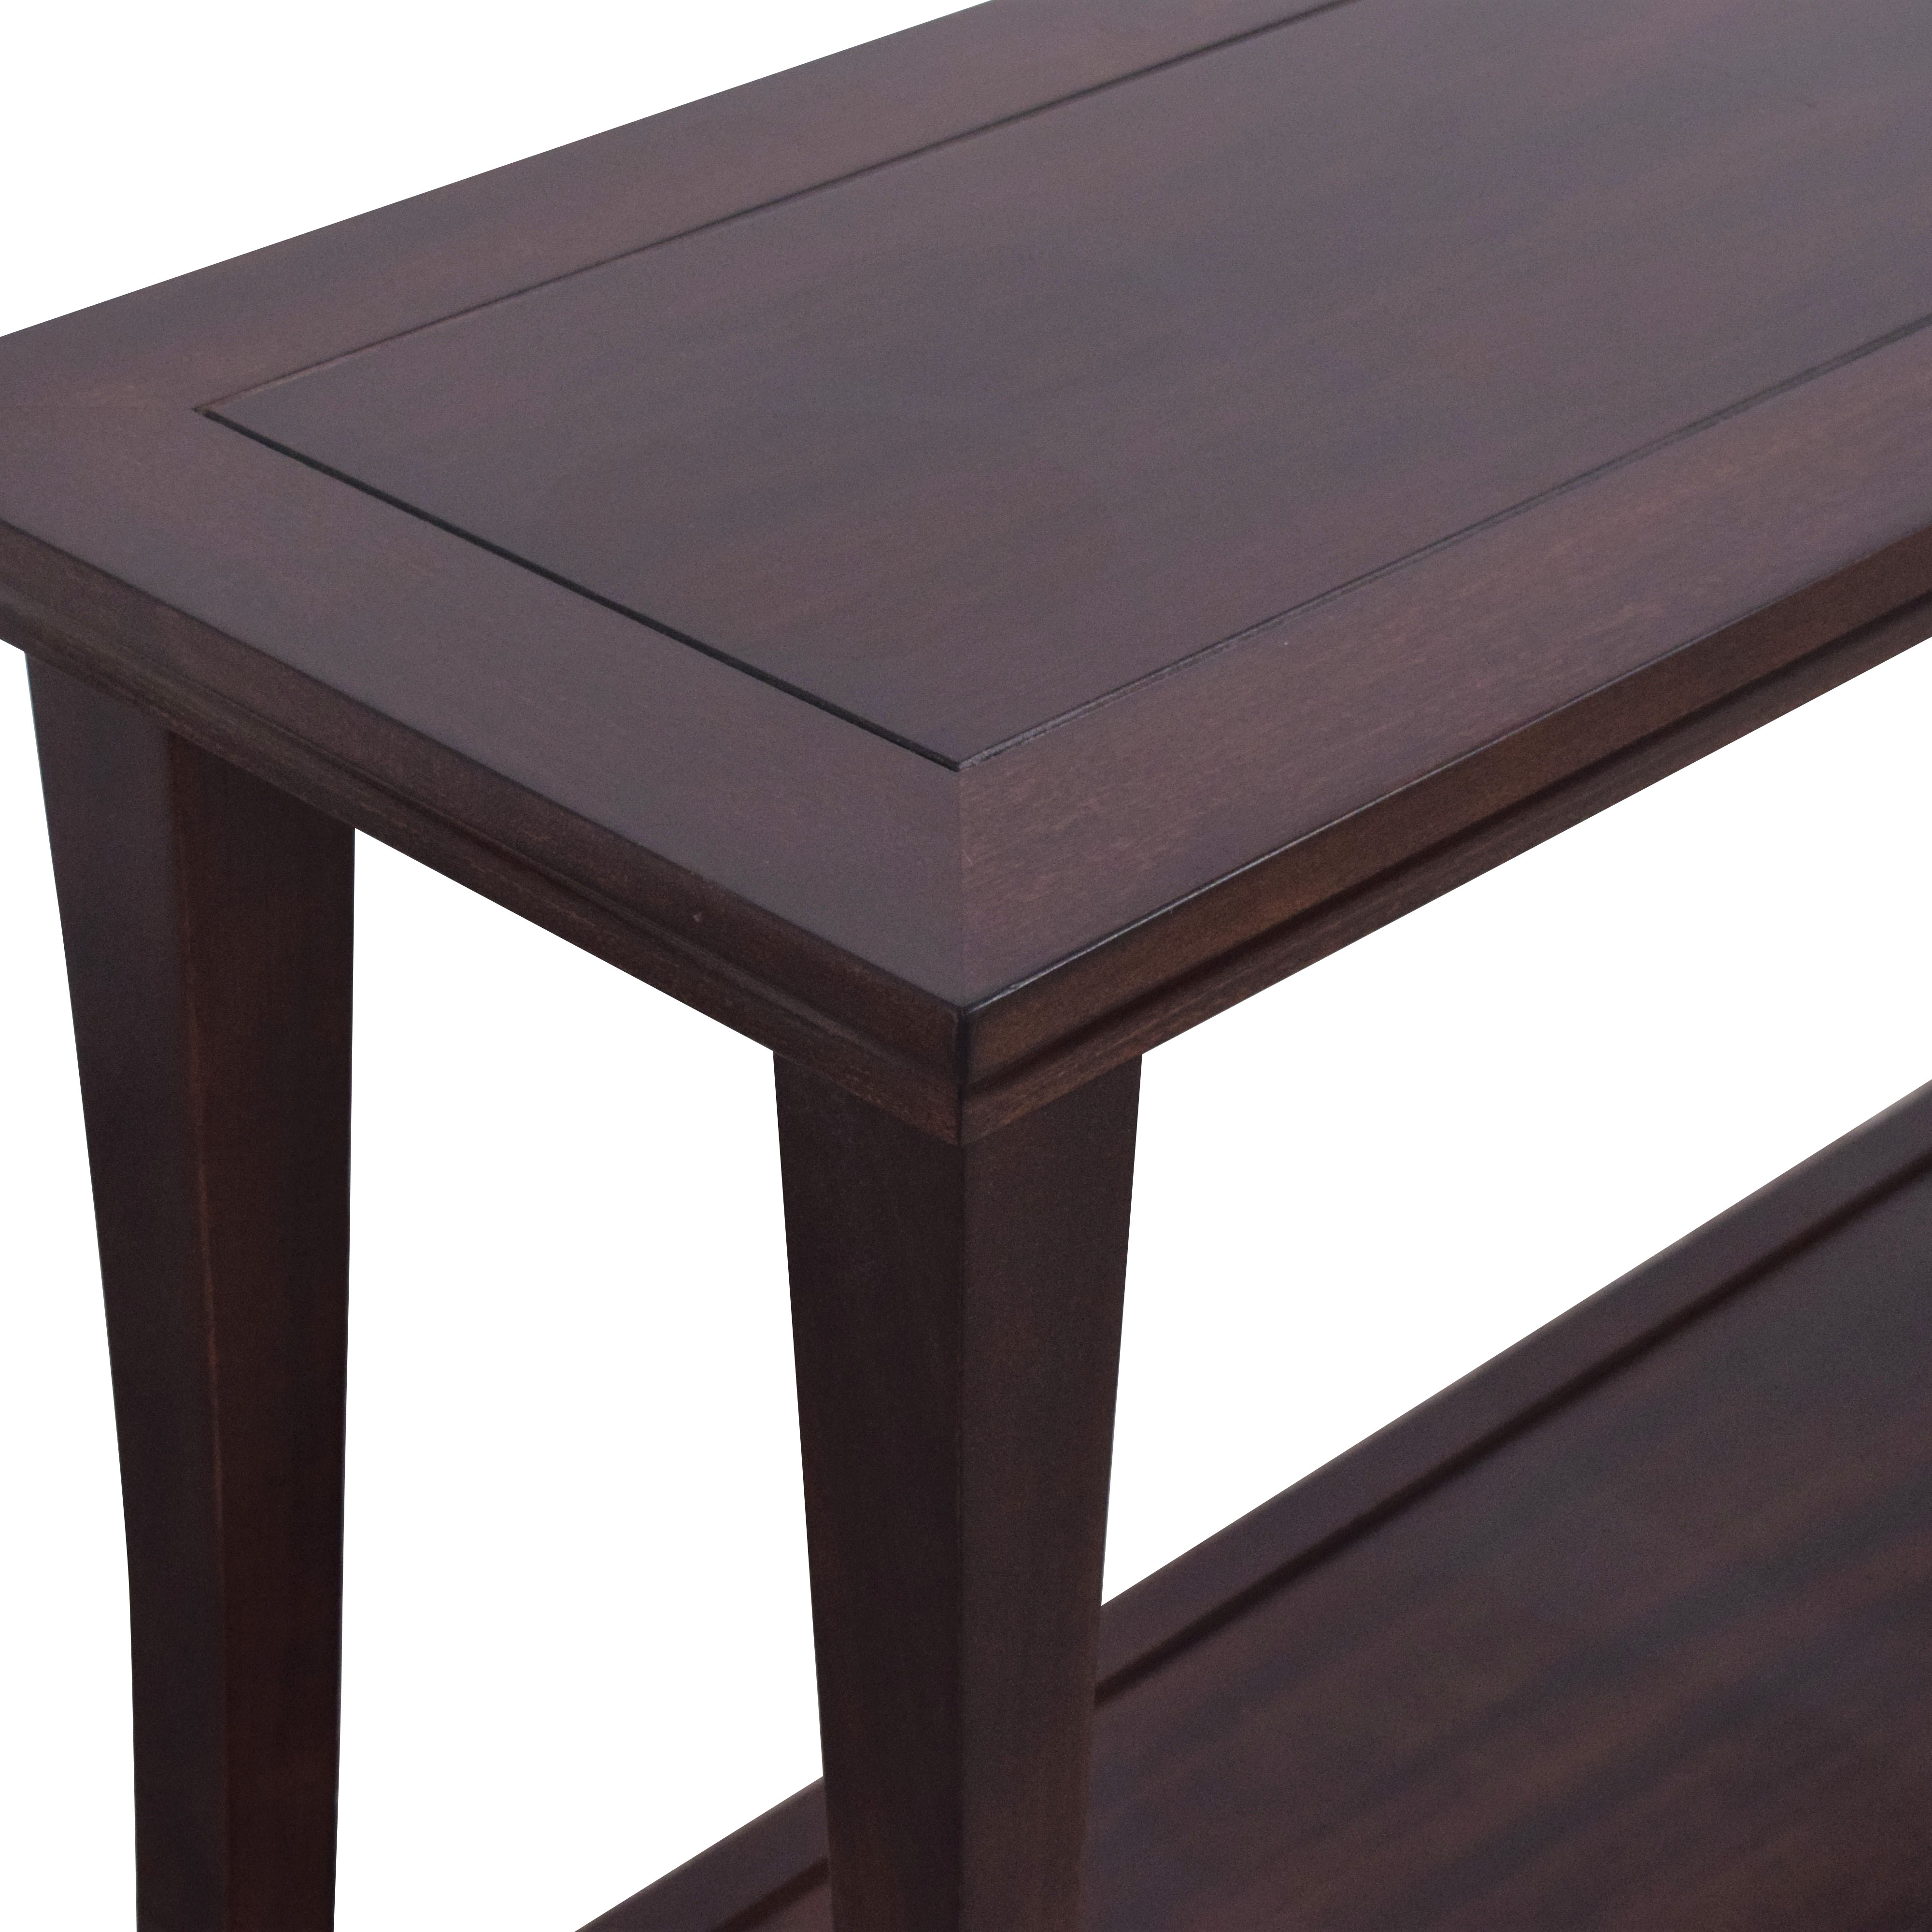 buy Pottery Barn Two Level Console Table Pottery Barn Tables